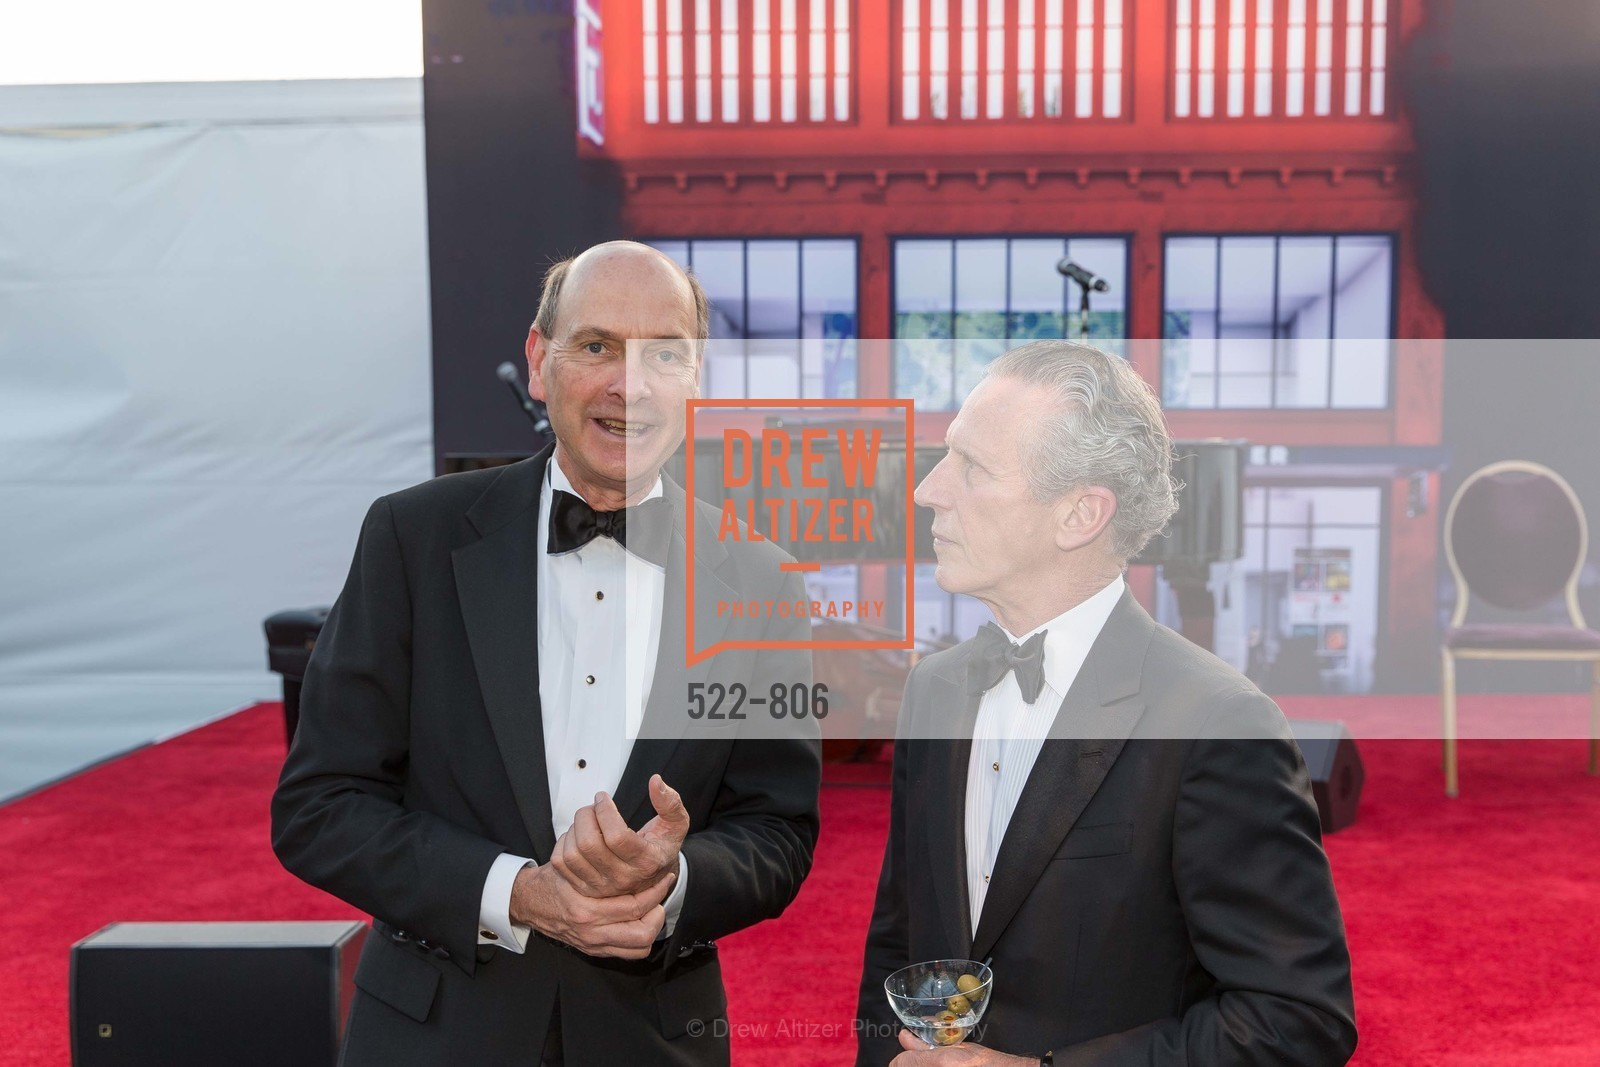 Keith Geeslin, Jim Marver, A.C.T. Gala Come Get Stranded, US, April 26th, 2015,Drew Altizer, Drew Altizer Photography, full-service agency, private events, San Francisco photographer, photographer california